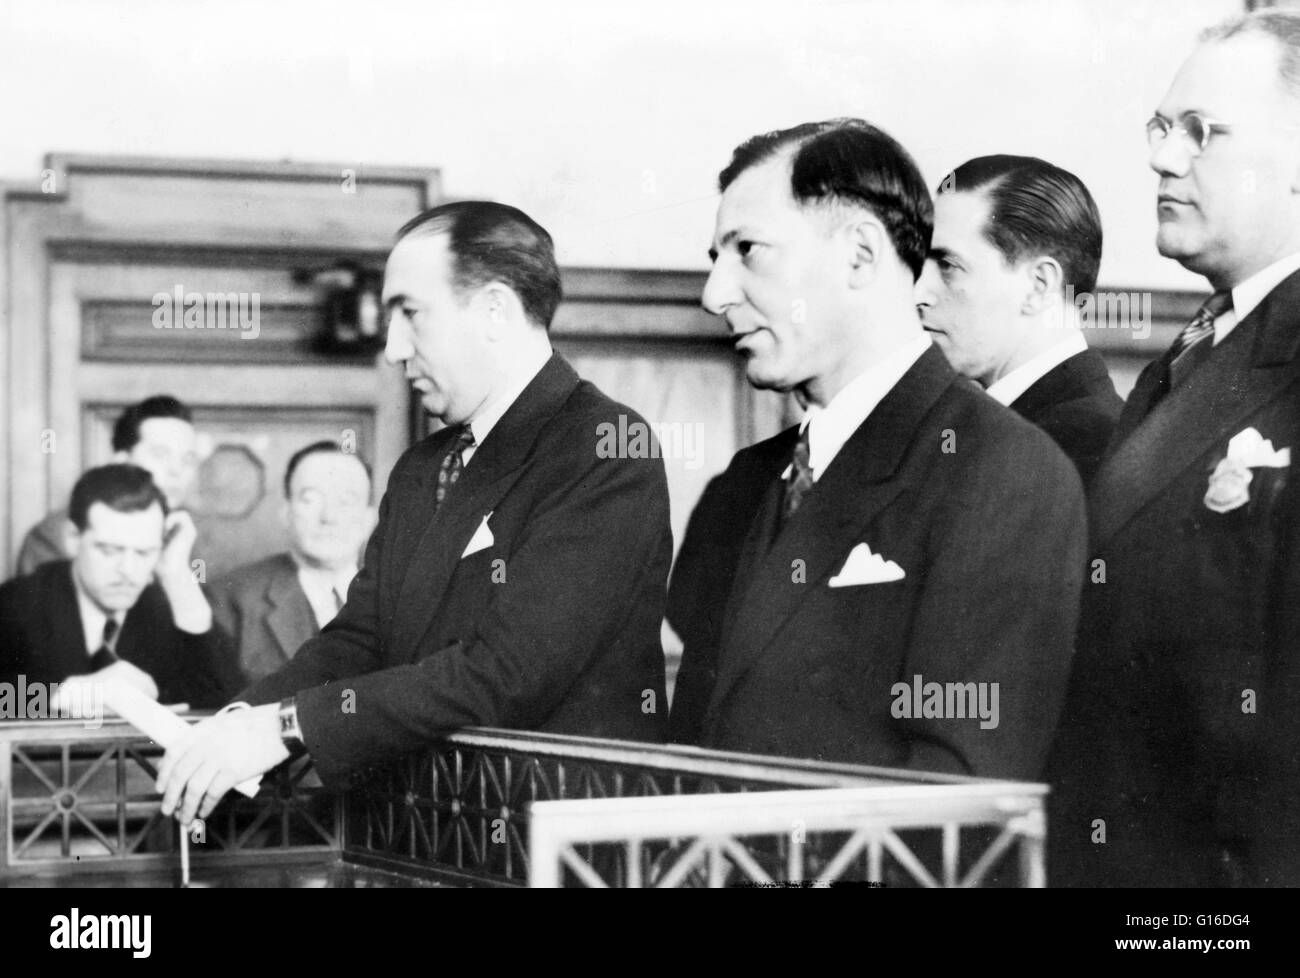 Buchalter, standing in court during sentencing, 1941. Louis Buchalter (February 6, 1897 - March 4, 1944) was an - Stock Image